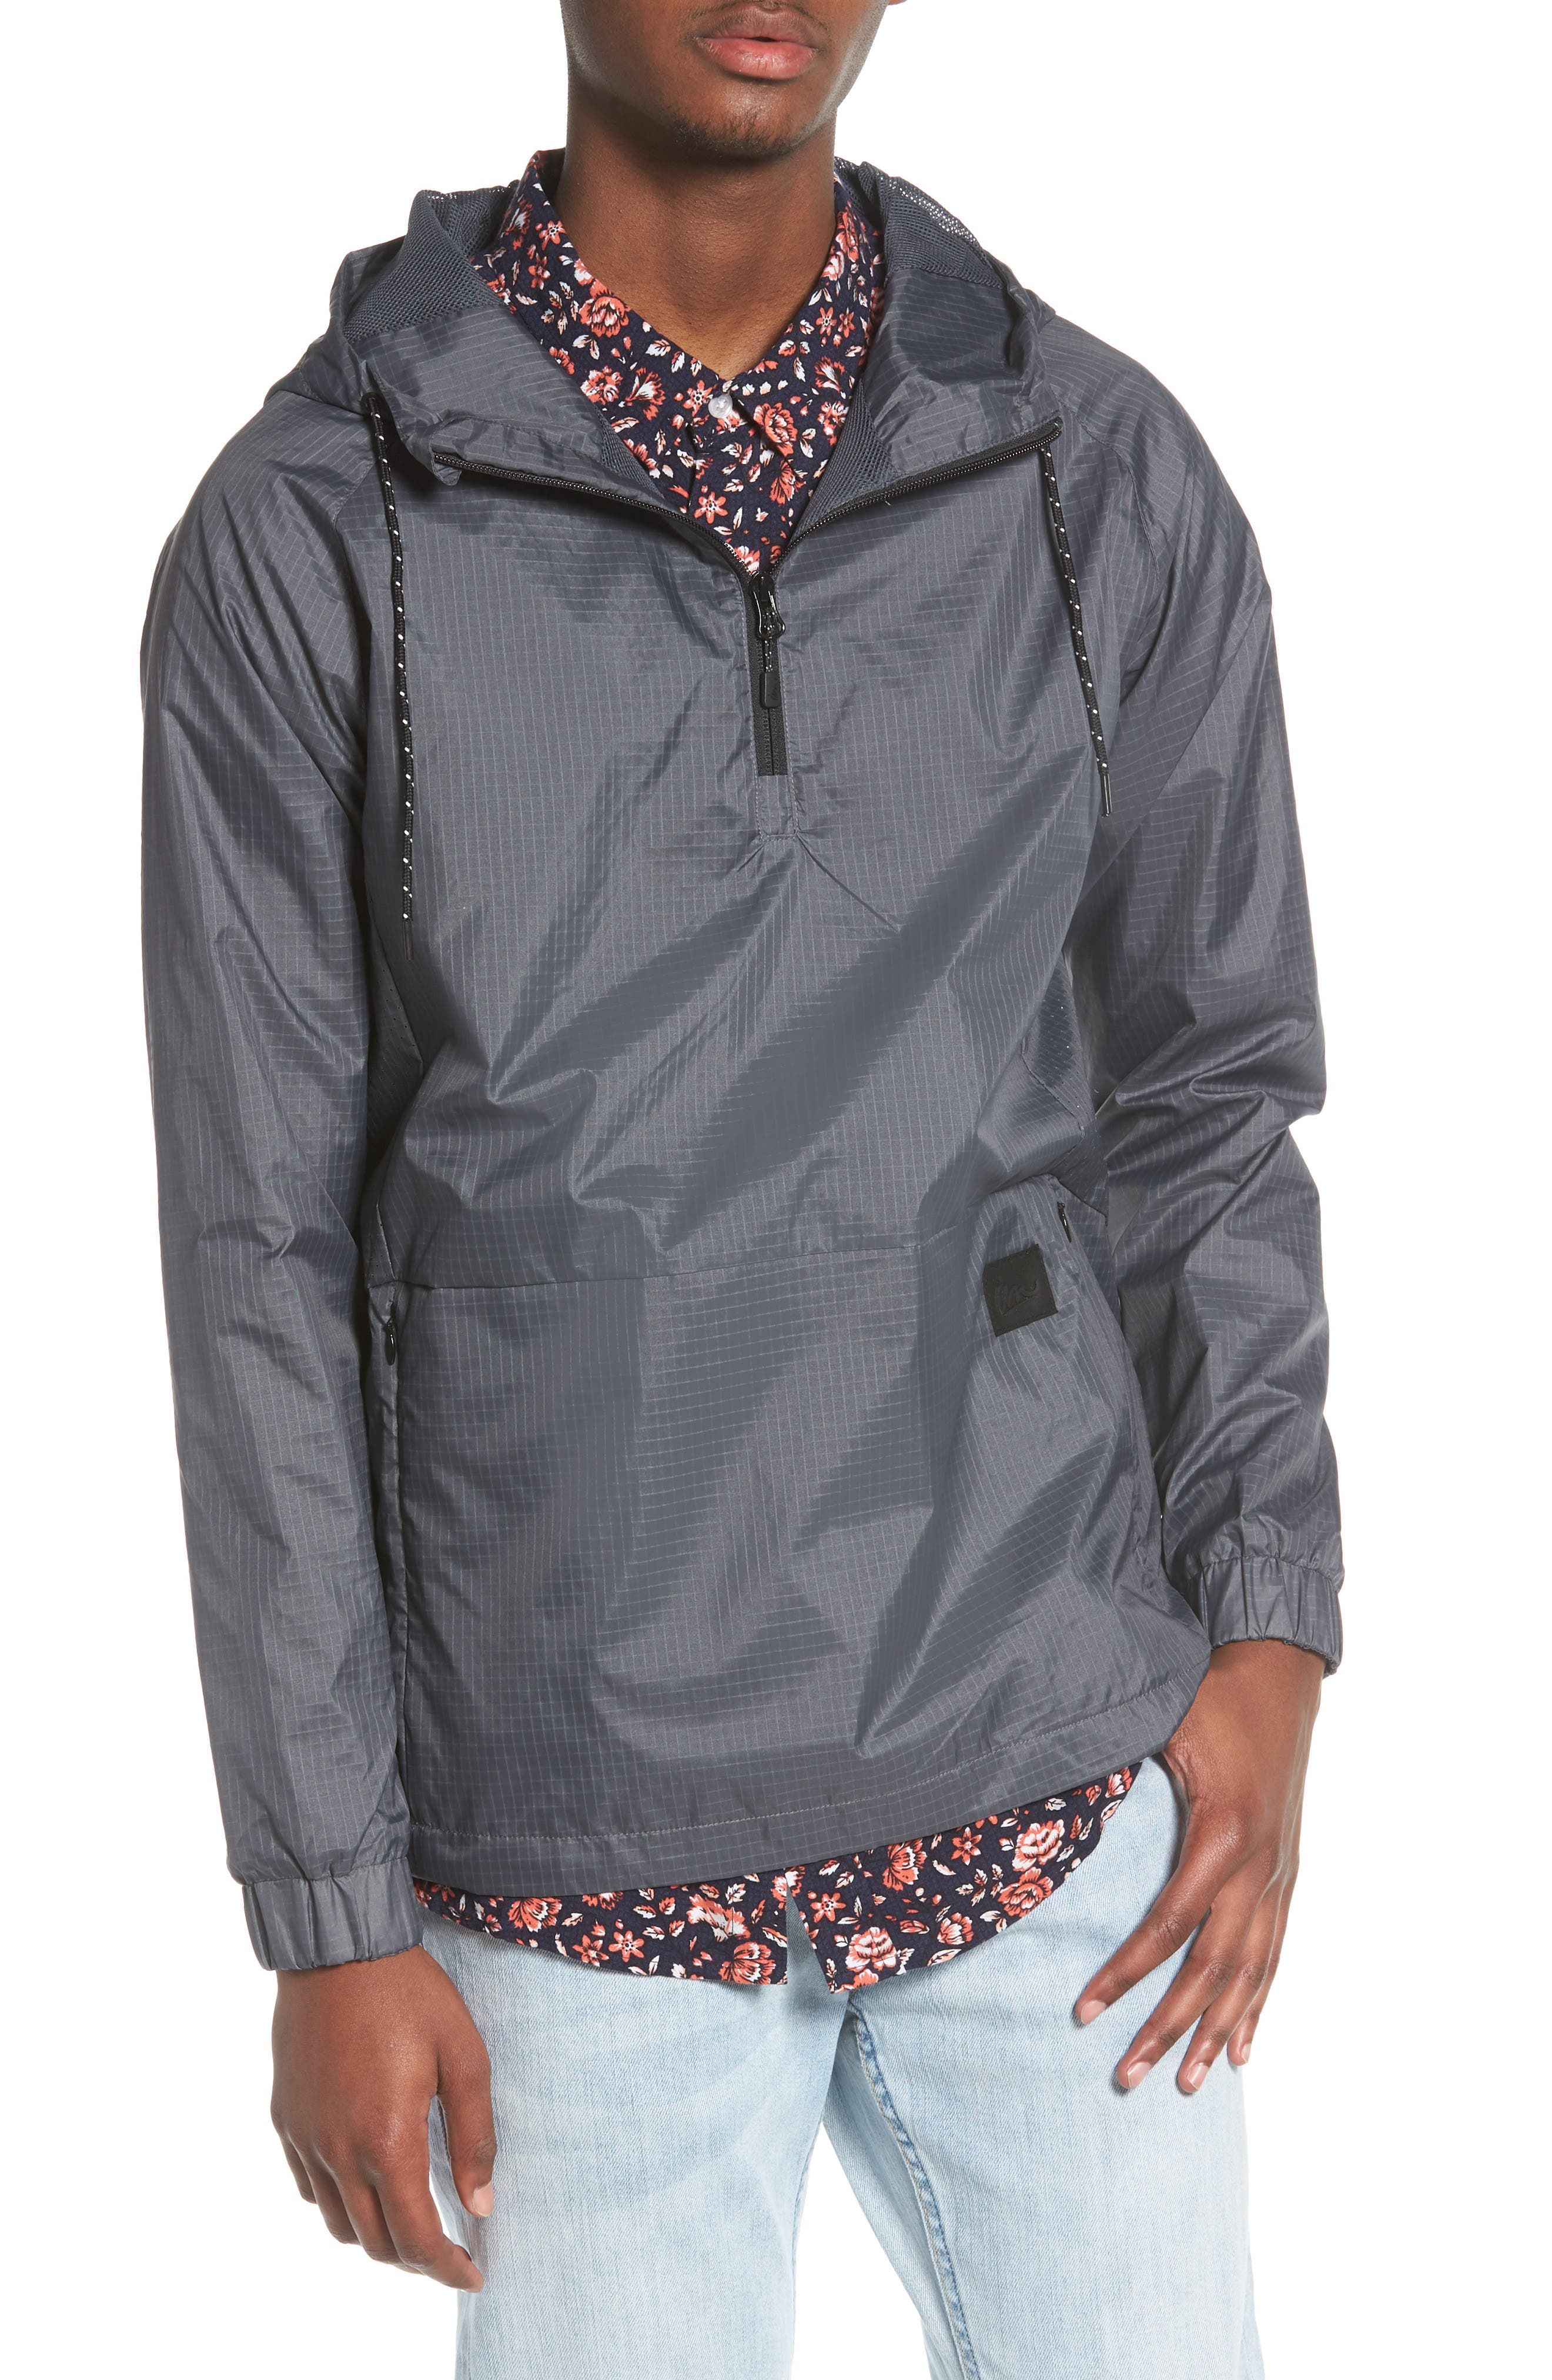 NCT Bezel Packable Anorak,                             Main thumbnail 1, color,                             Asphalt